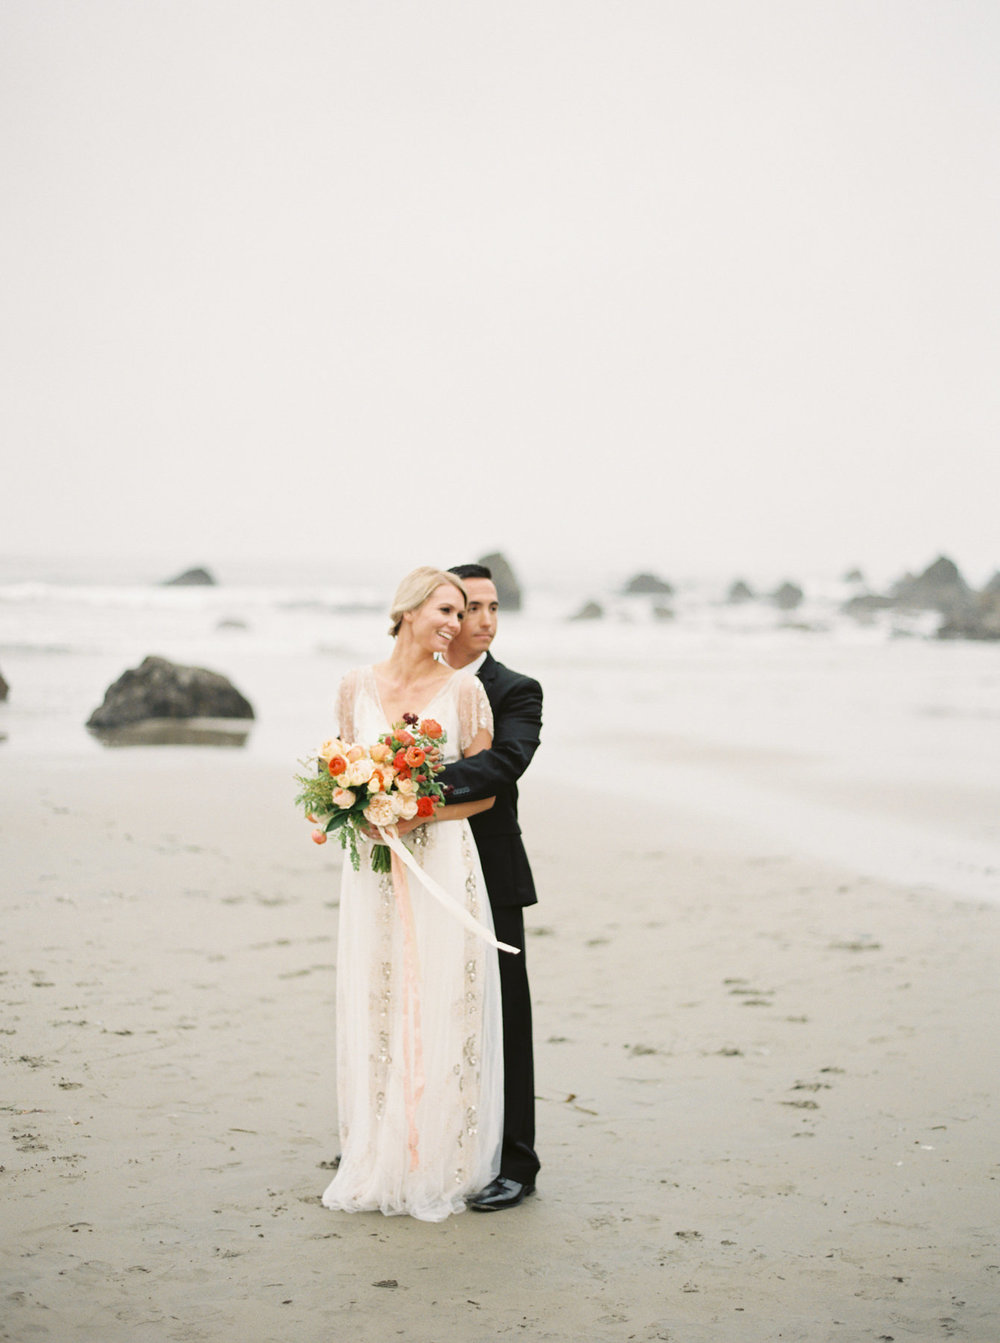 WilderFloralCo_CoastalElopement_BrideAndGroom